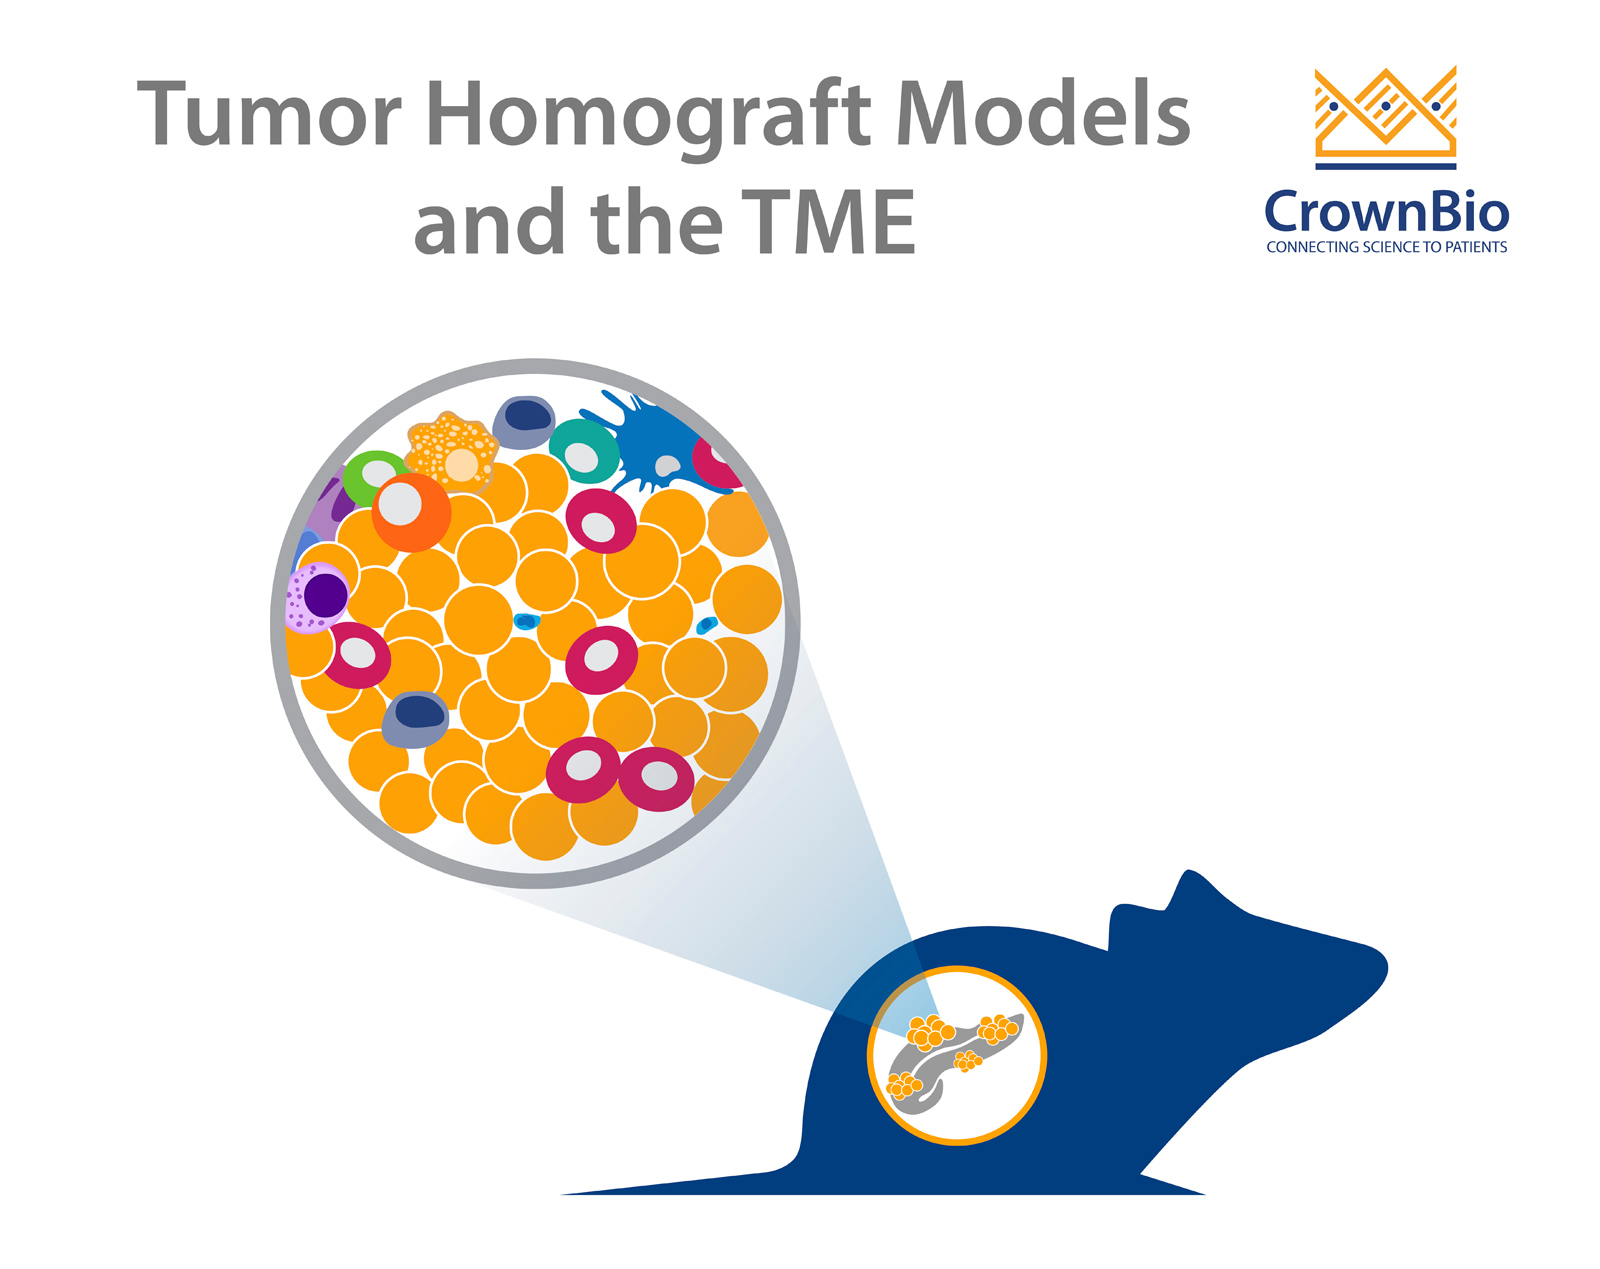 Orthotopic or Subcutaneous Tumor Homograft Models?